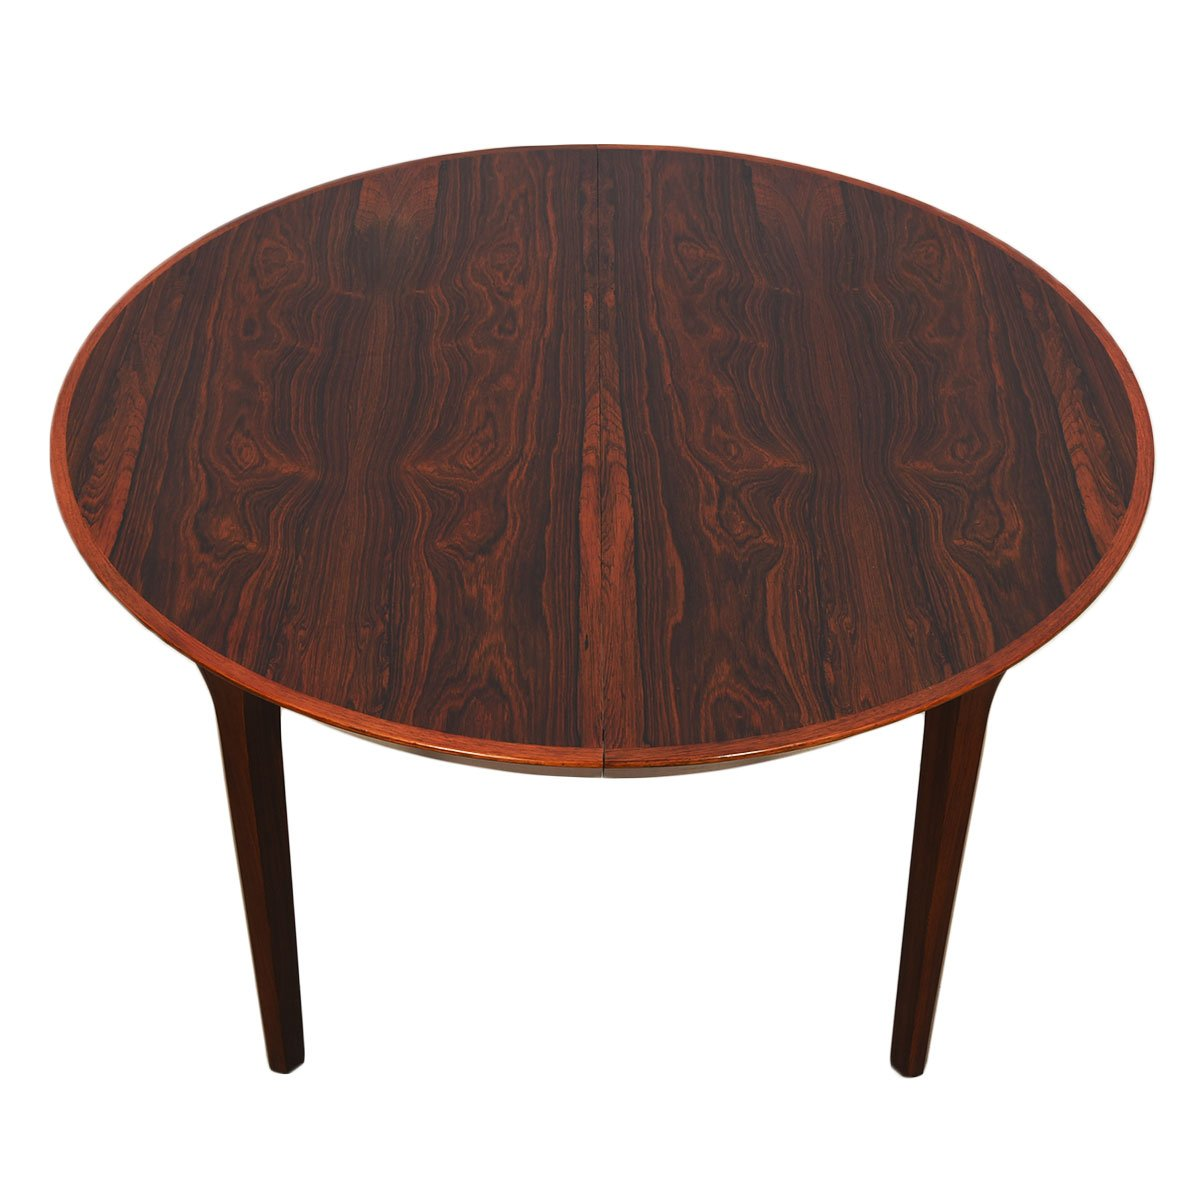 Kai Kristiansen Danish Rosewood Round-to-Oval Expanding Dining Table